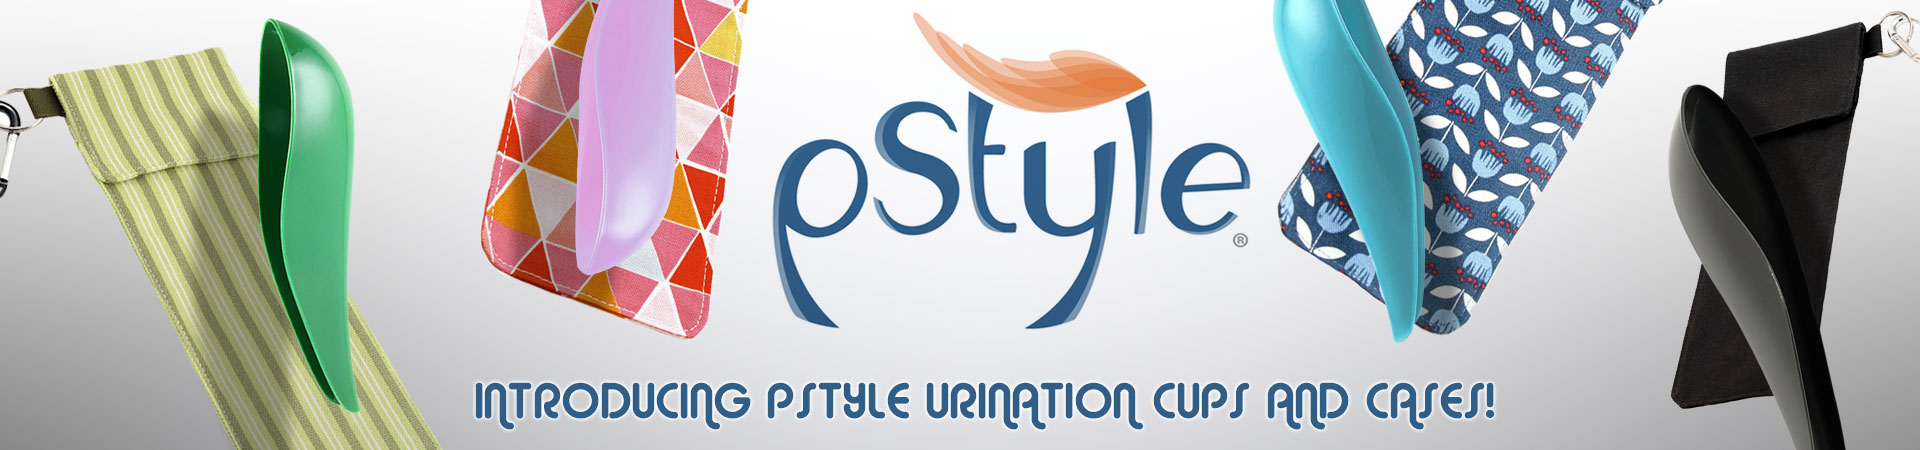 Introducing pStyle Urination Cups & Cases! The pStyle is a plastic device that allows you to pee, standing up, without undressing!